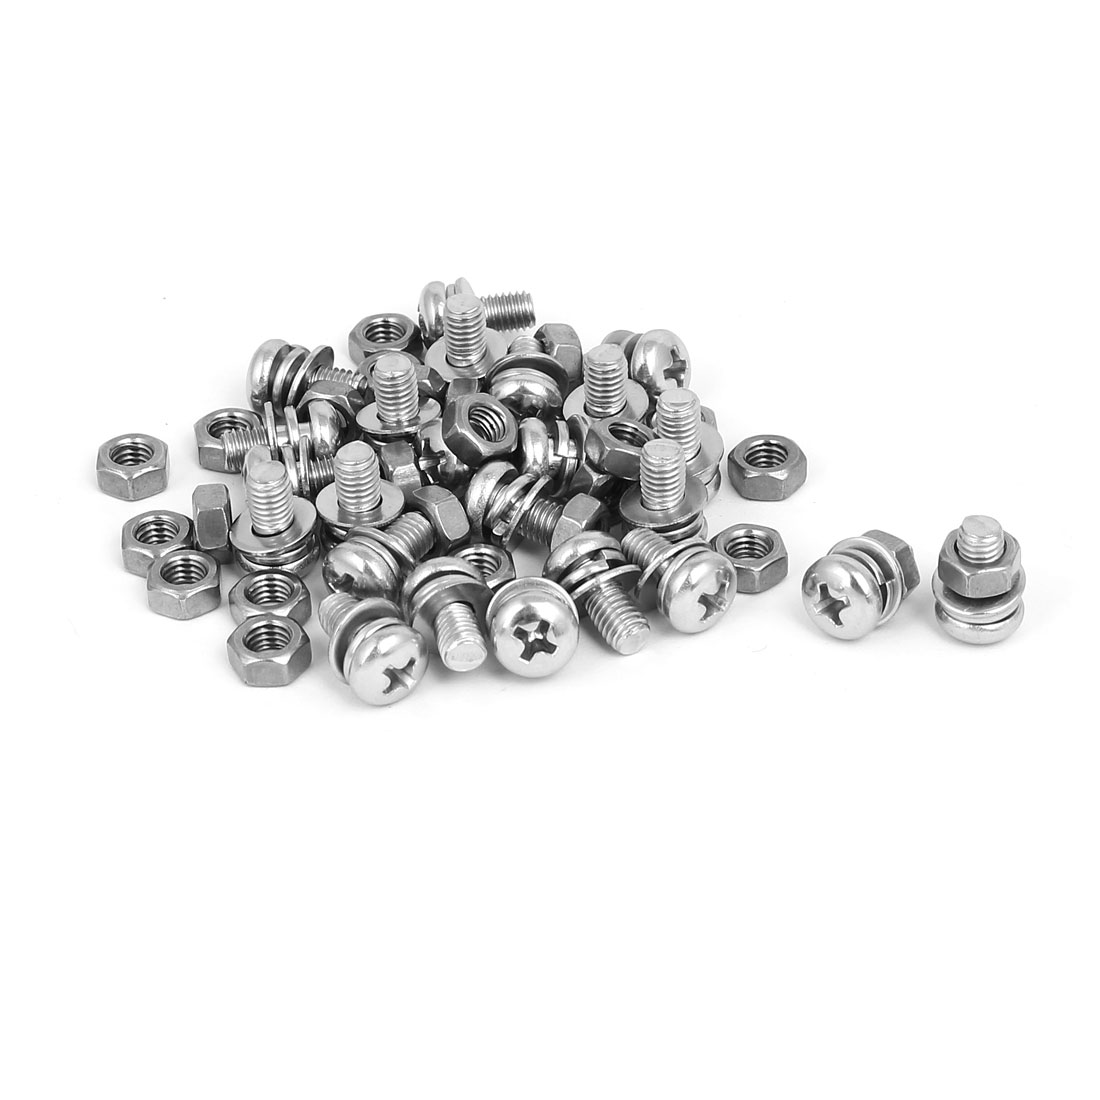 M5 x 10mm 304 Stainless Steel Phillips Pan Head Screws Nuts w Washers 25 Sets